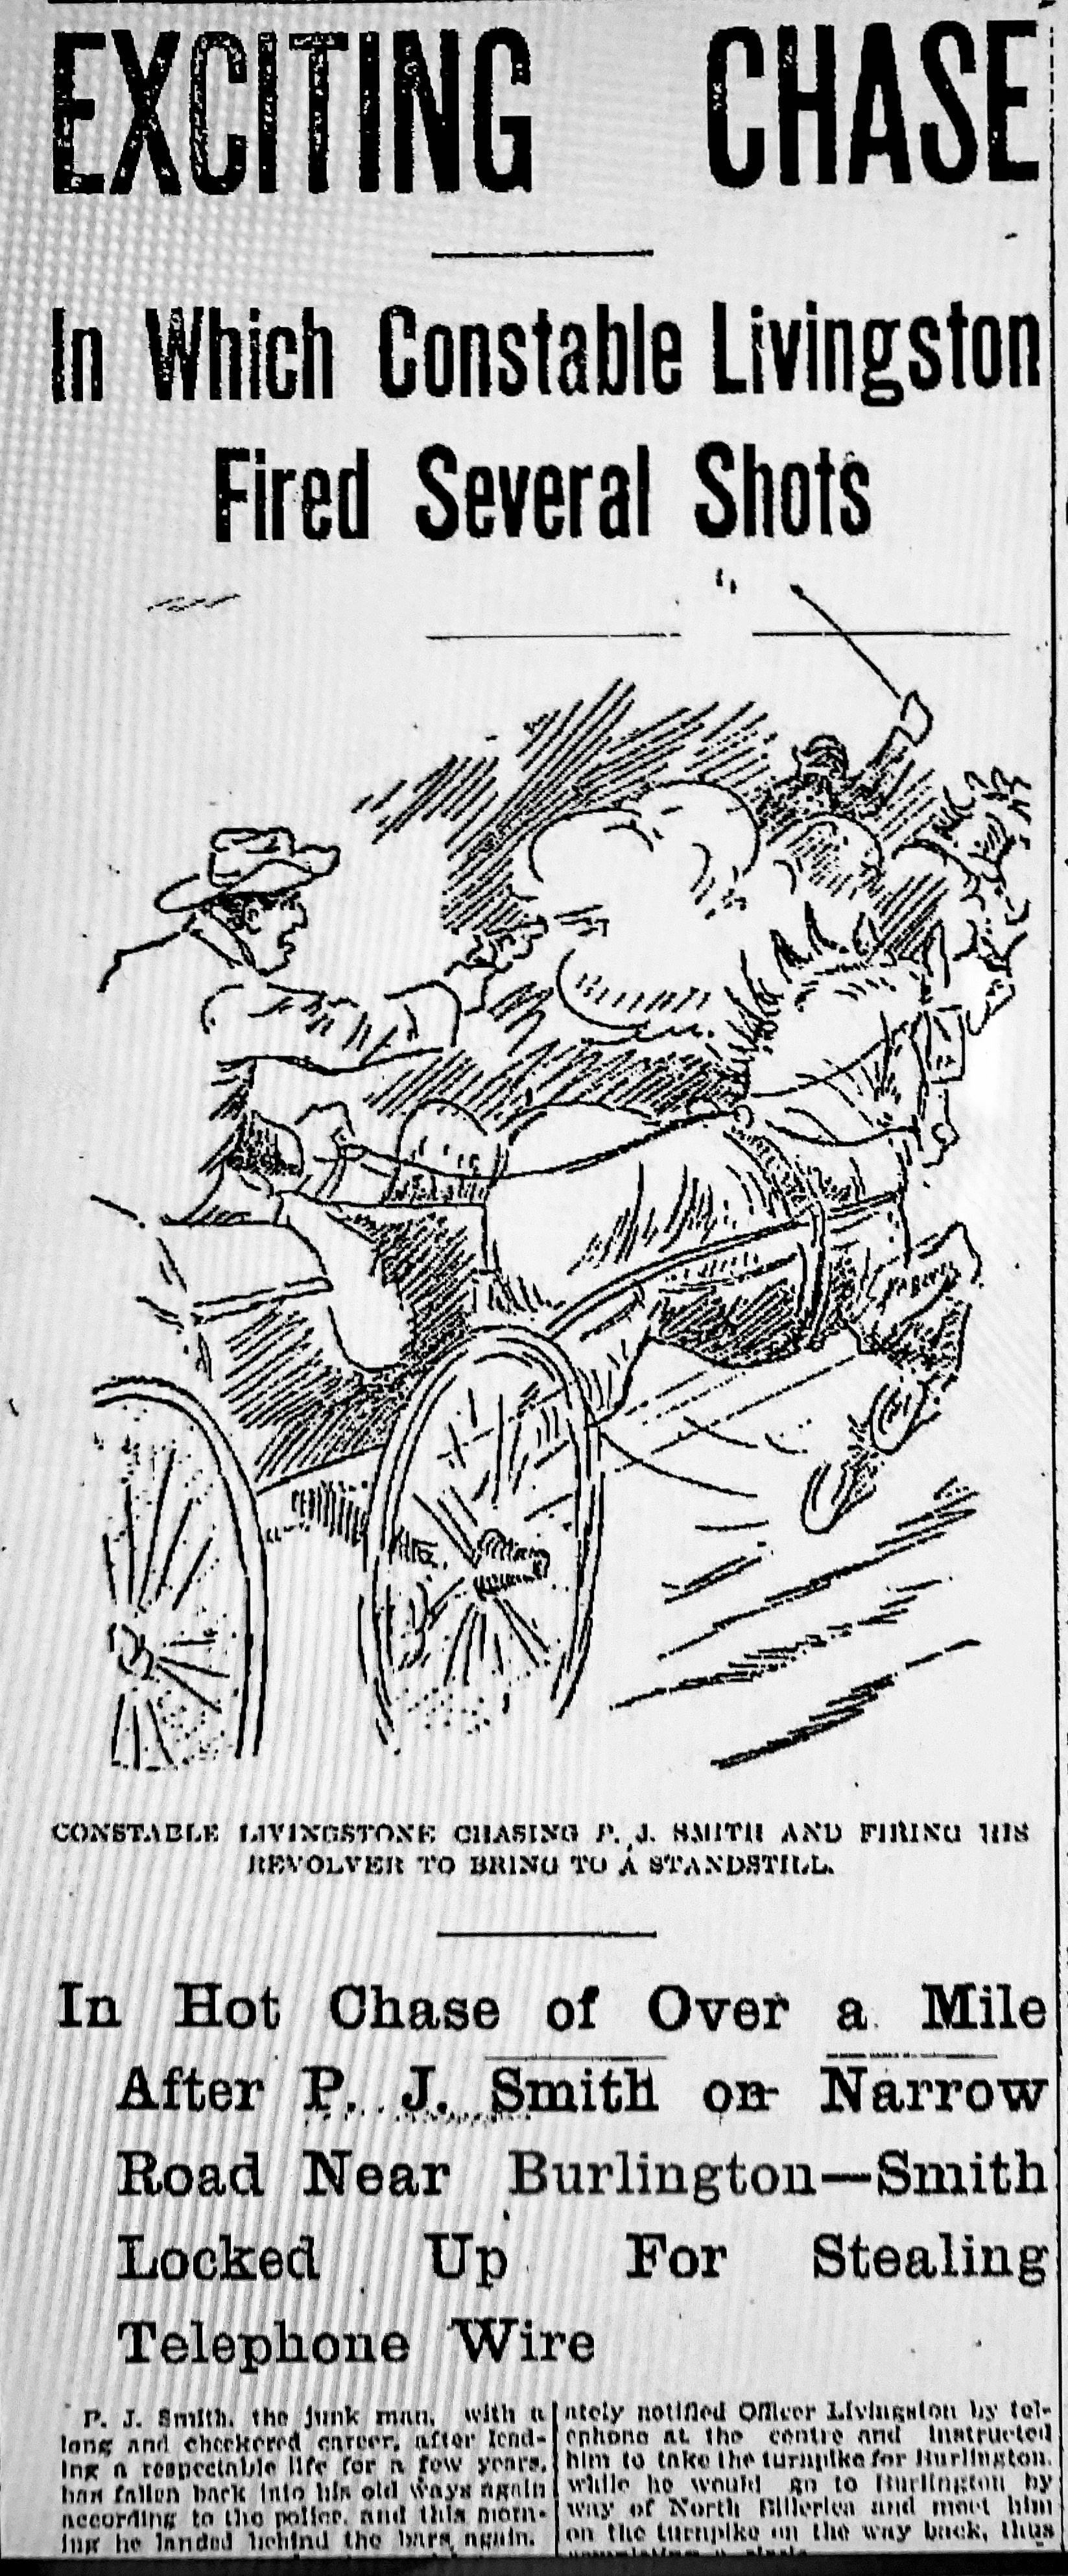 Lowell Sun March 11, 1905 front page graphic